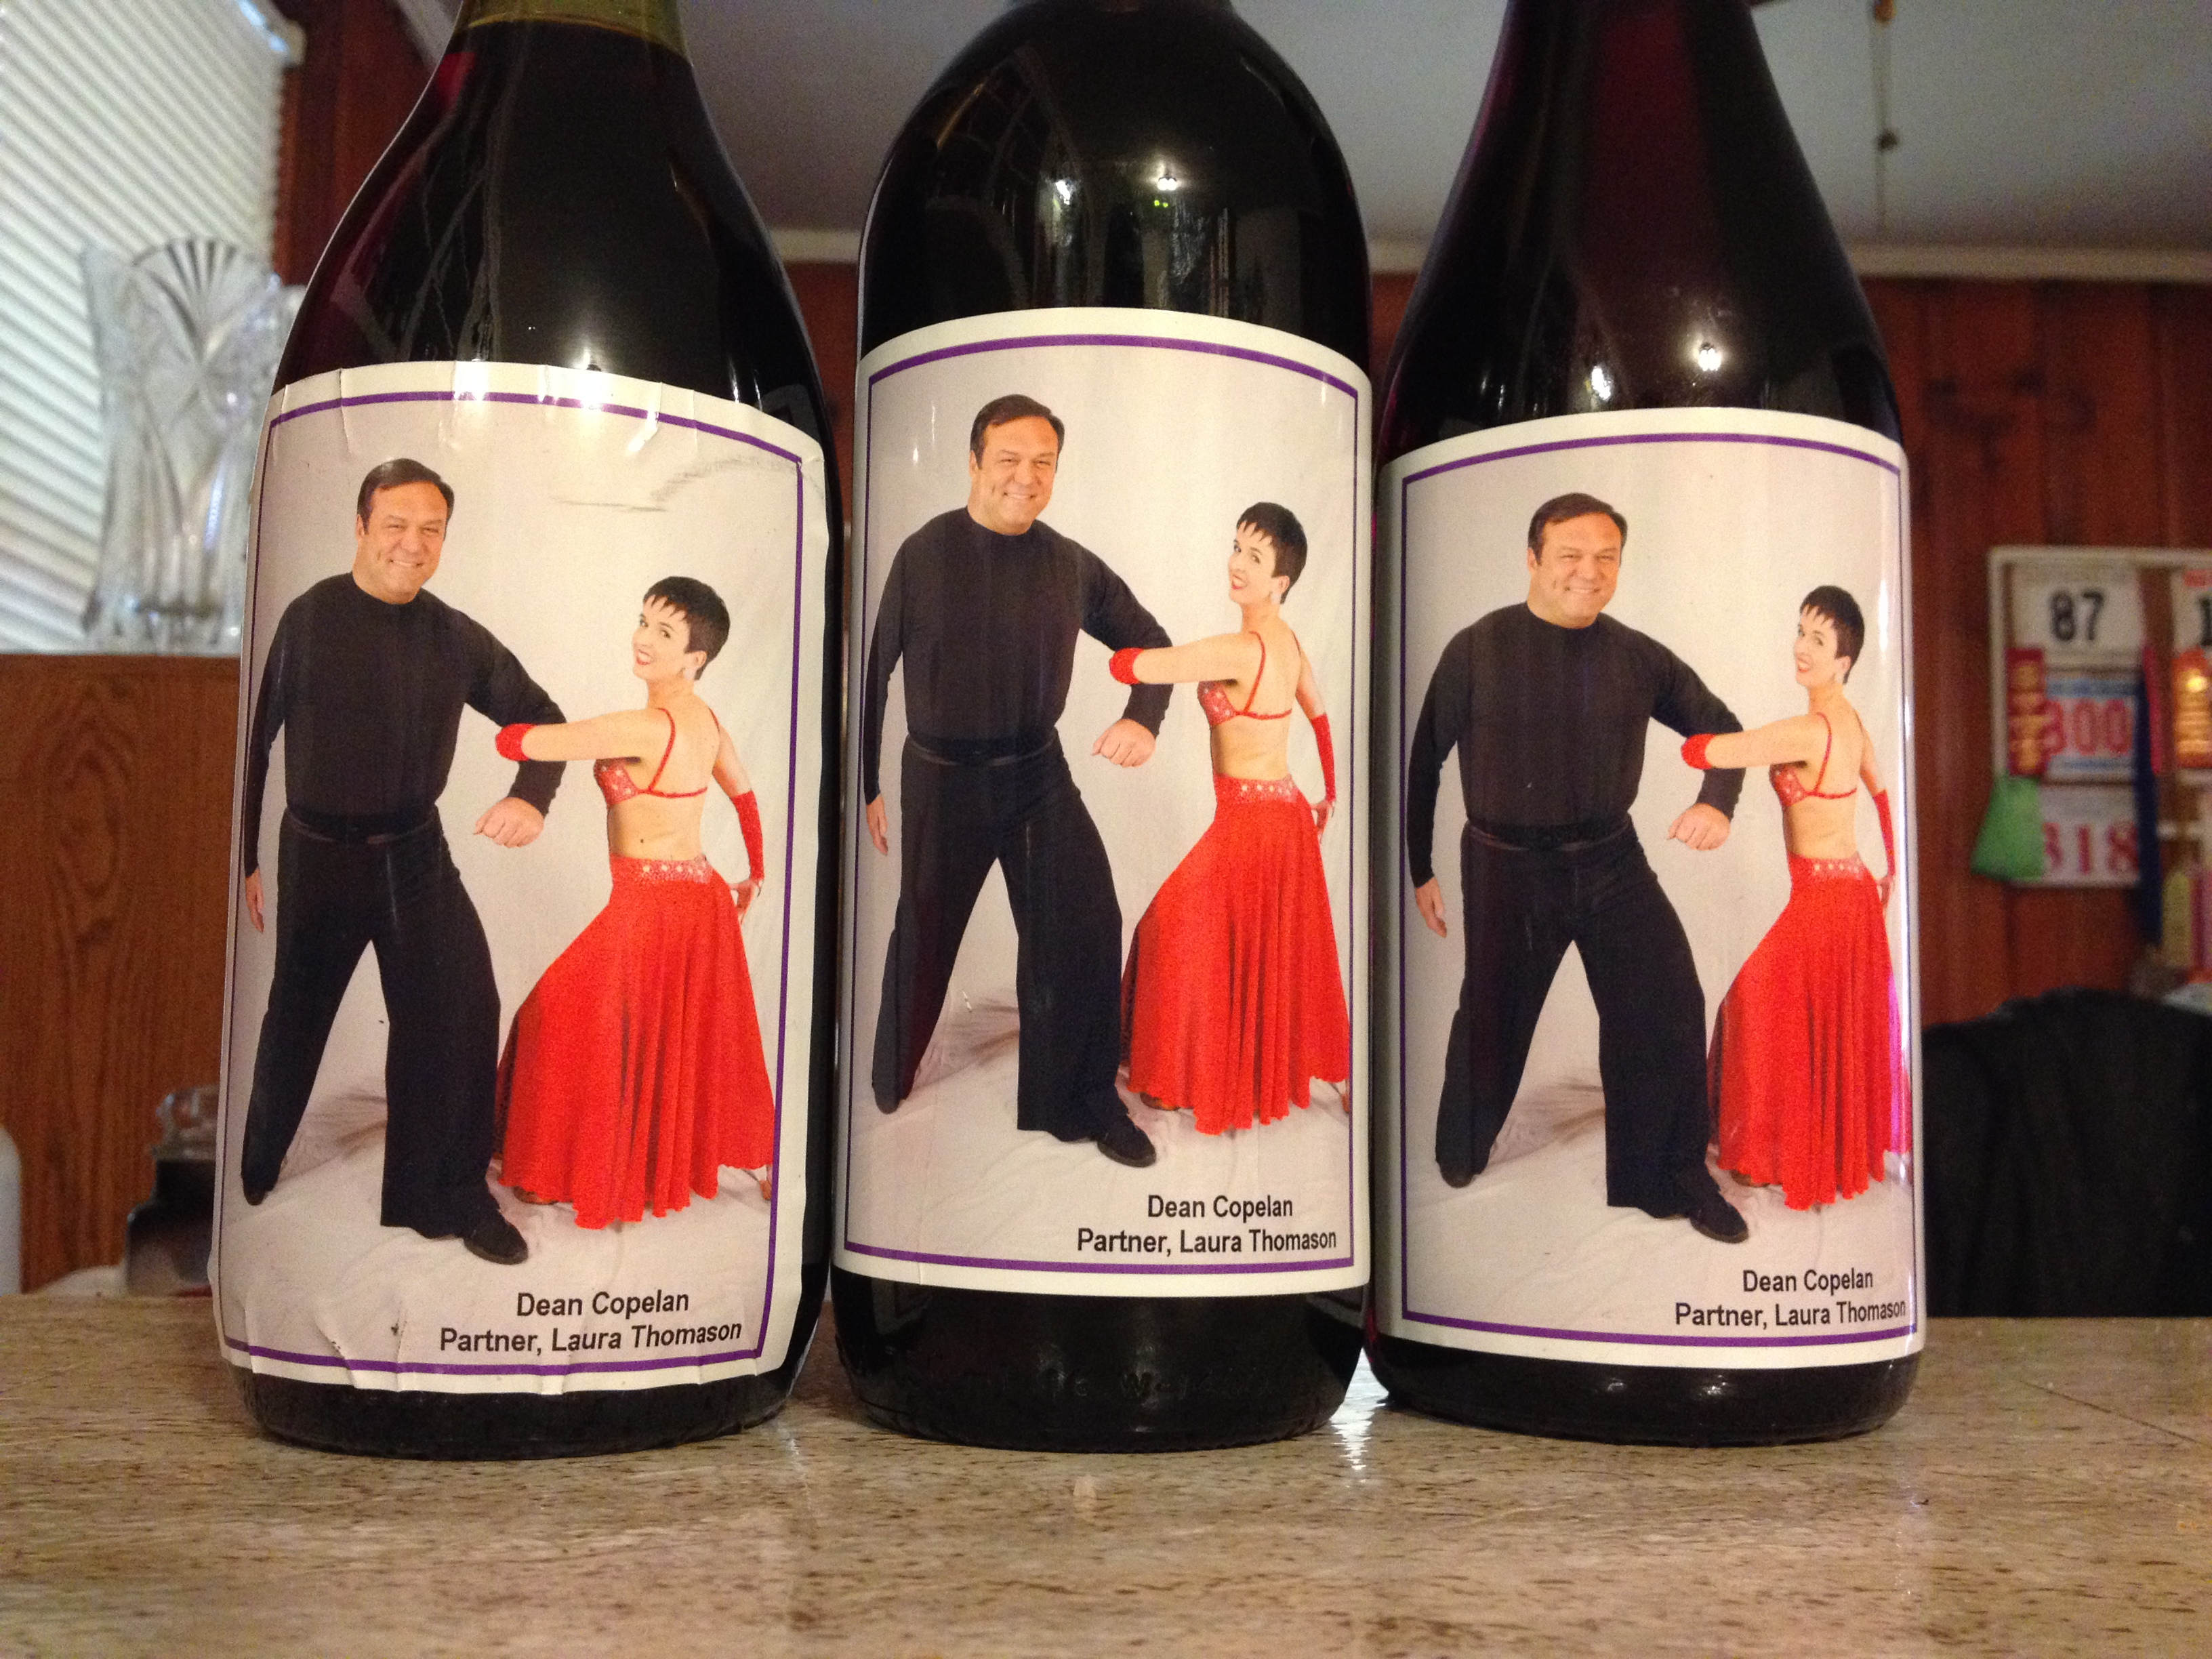 Wine bottles of fame!